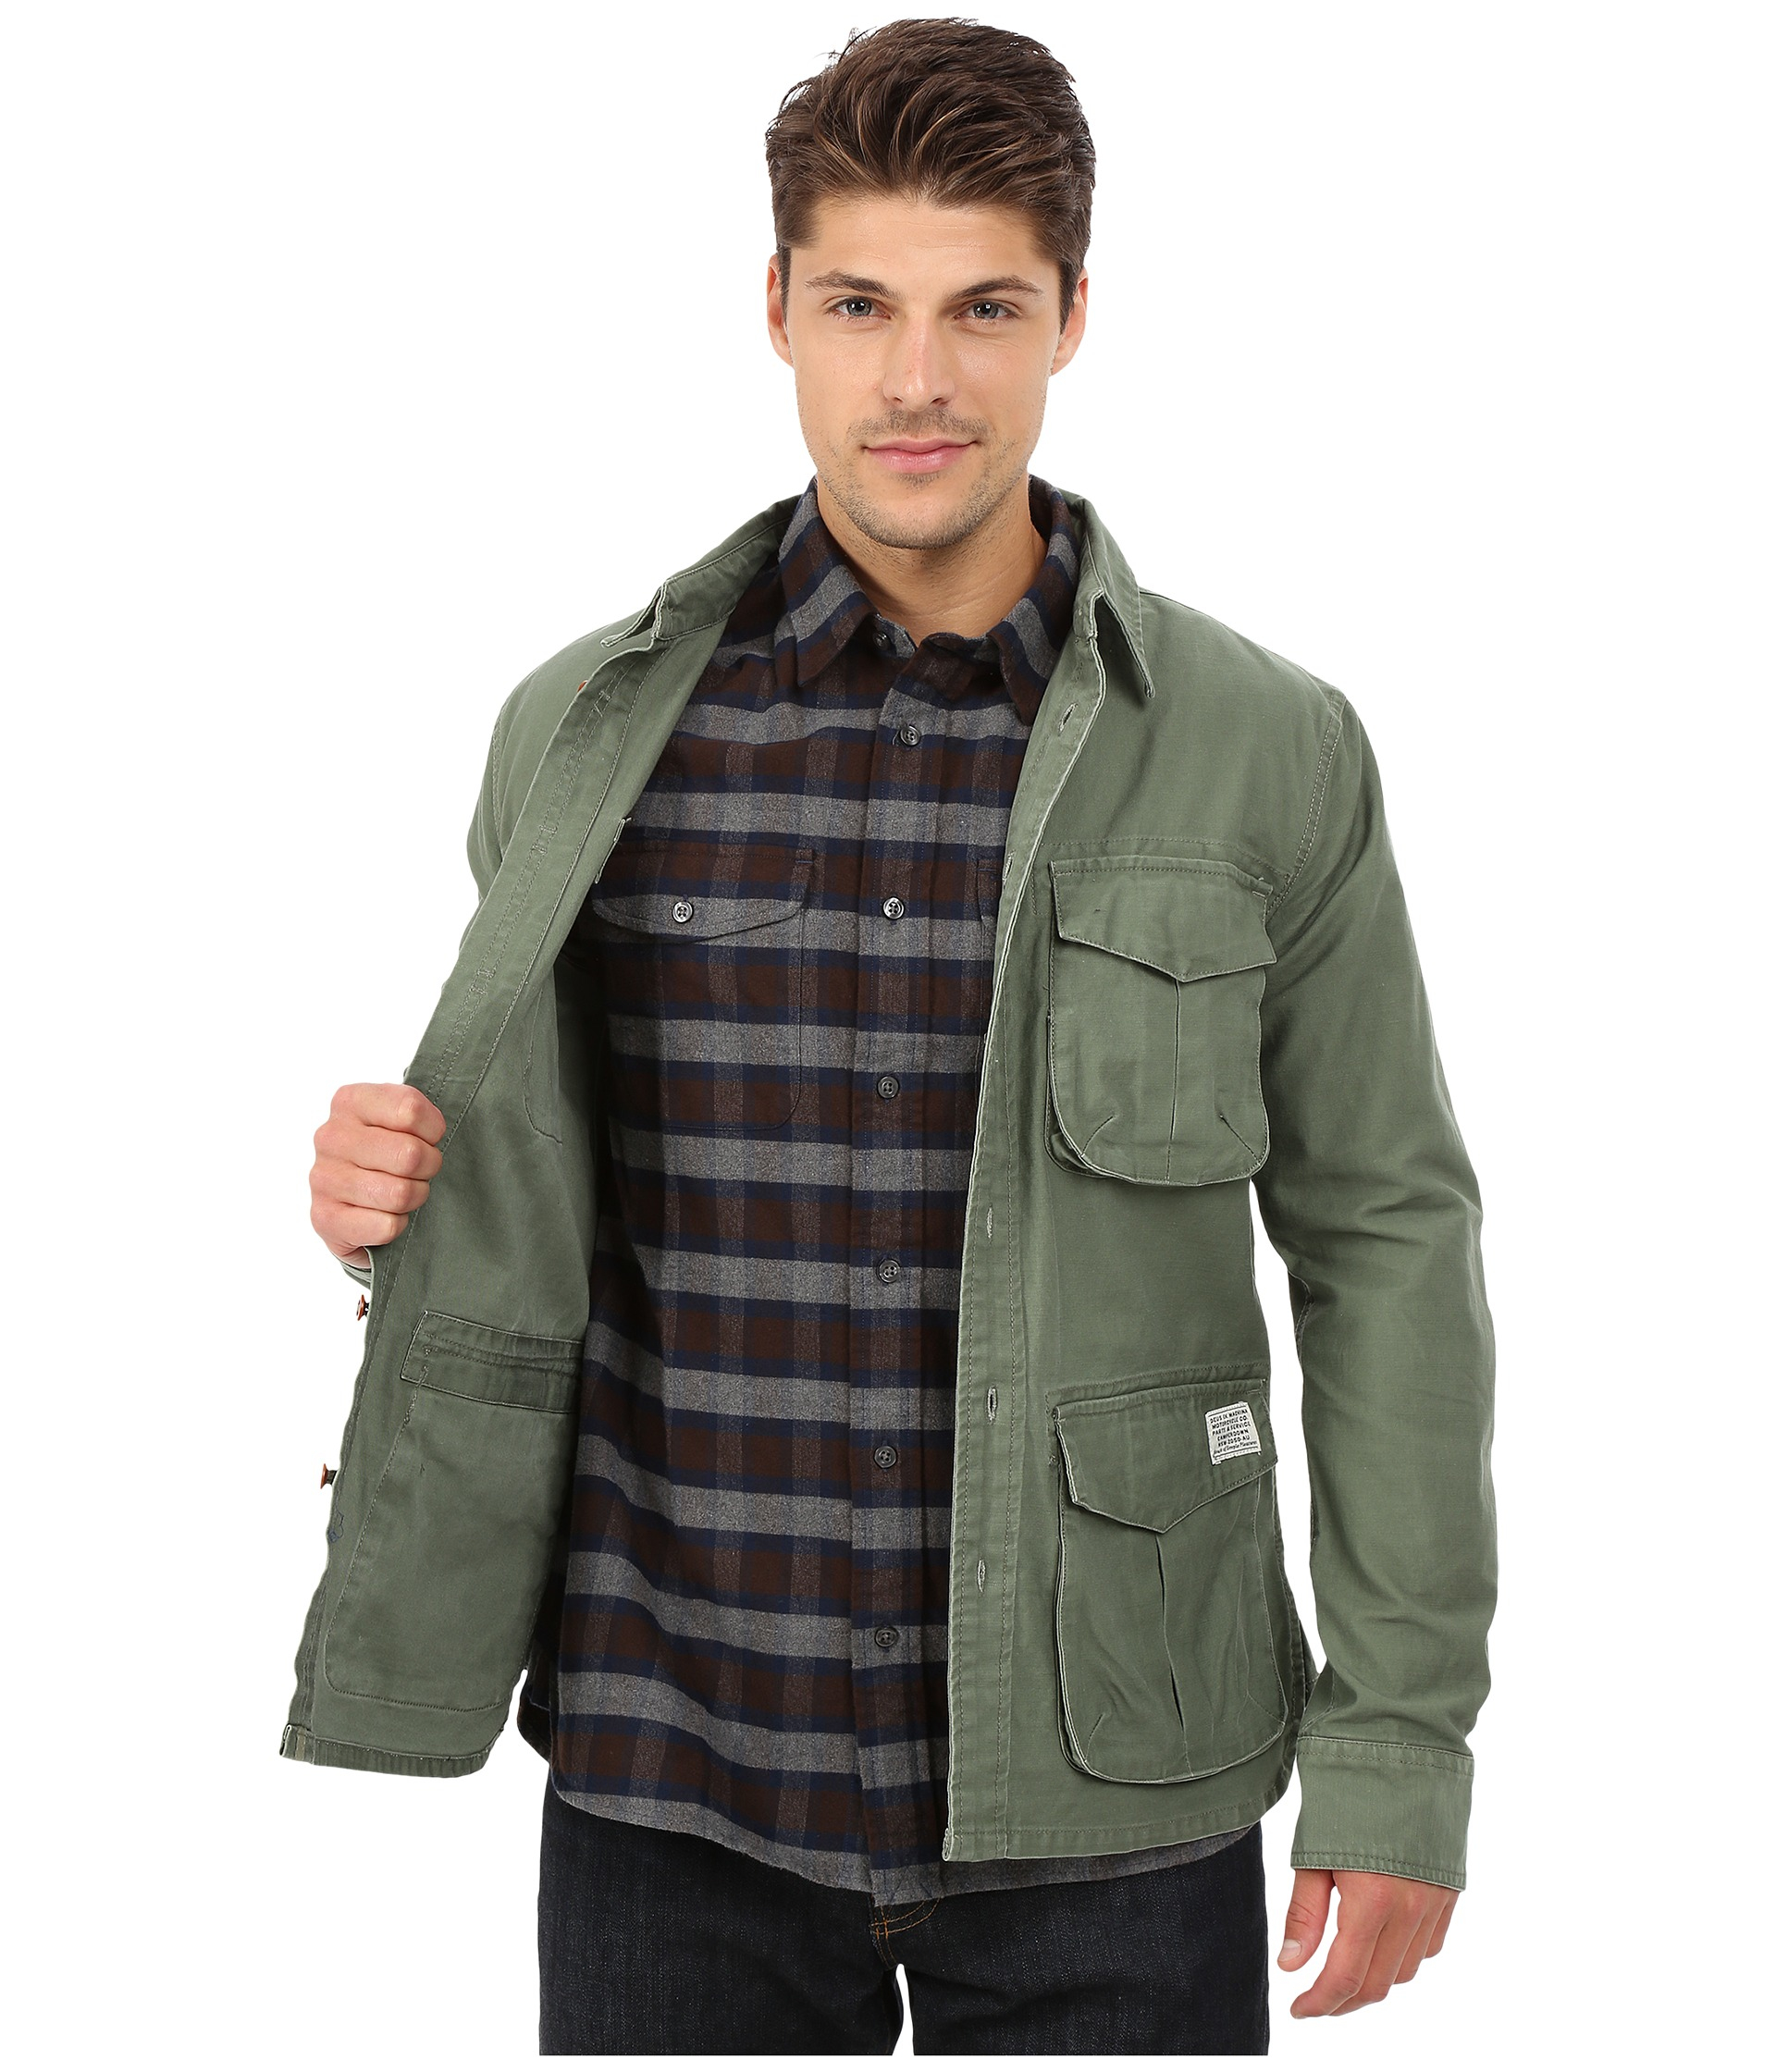 Jacket Over Shirt - Coat Nj